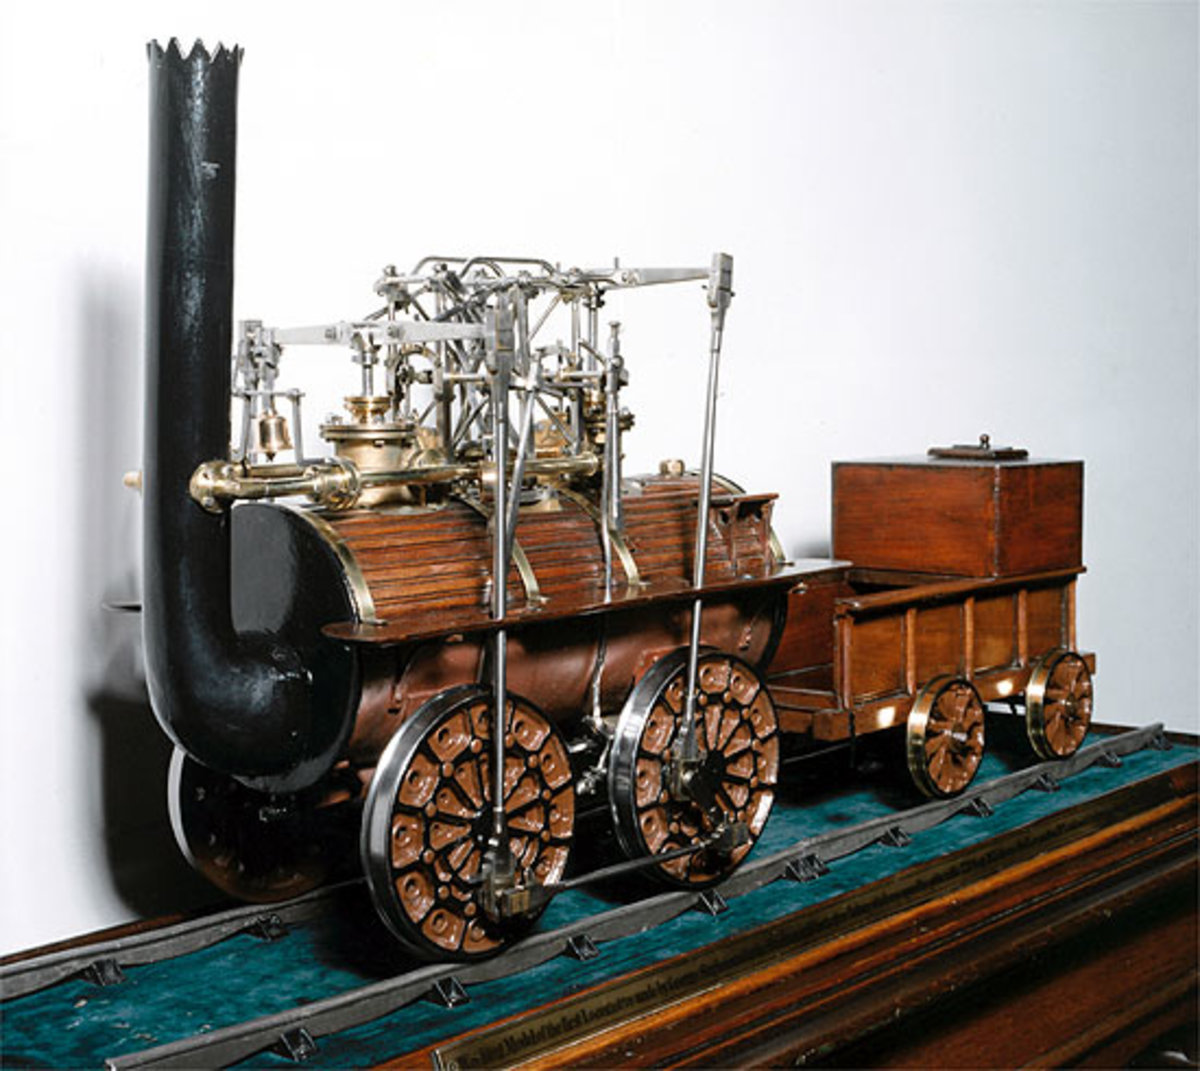 A model of Locomotion No1, built by Robert Stephenson & Co was built in 1825 for the opening of the S&DR - she ran until 'retired' in 1857, six years before the North Eastern Railway absorbed the S&DR